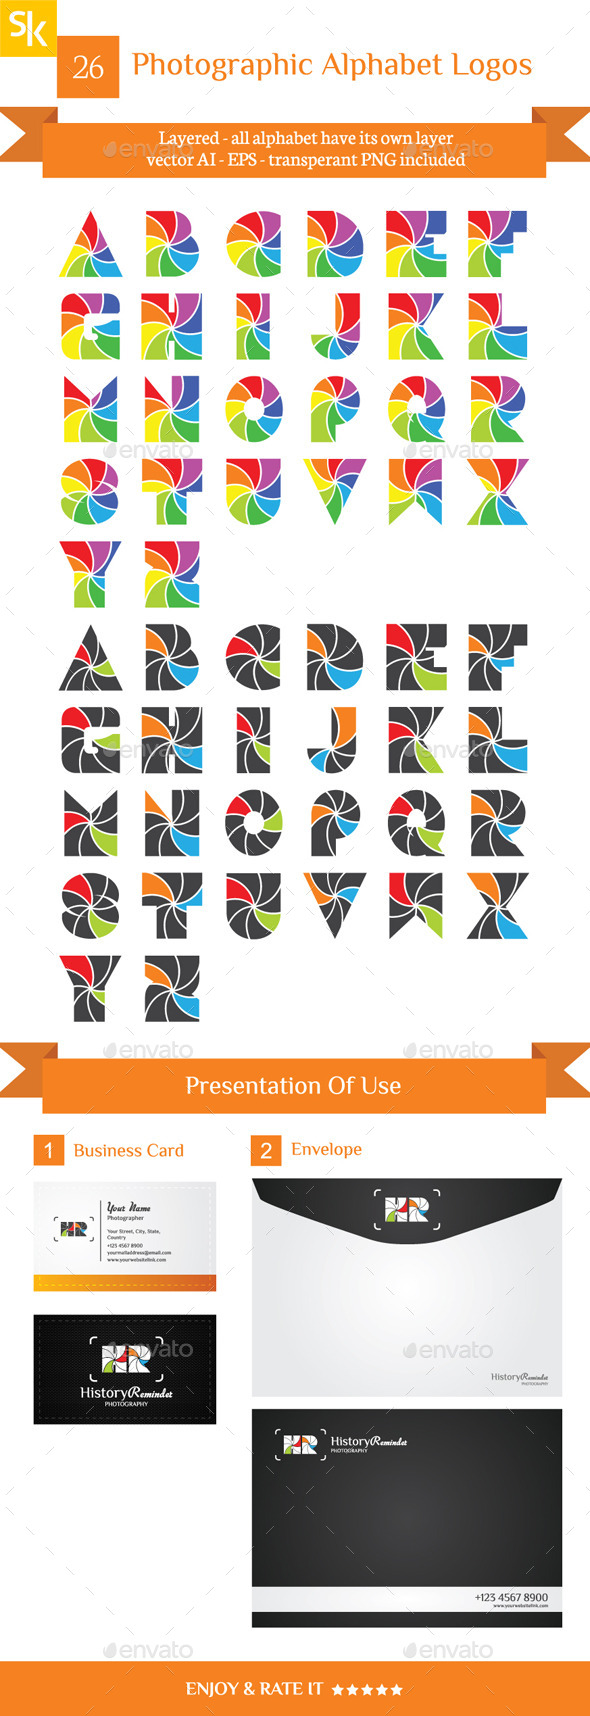 GraphicRiver Photographic Alphabet Logos 10575562